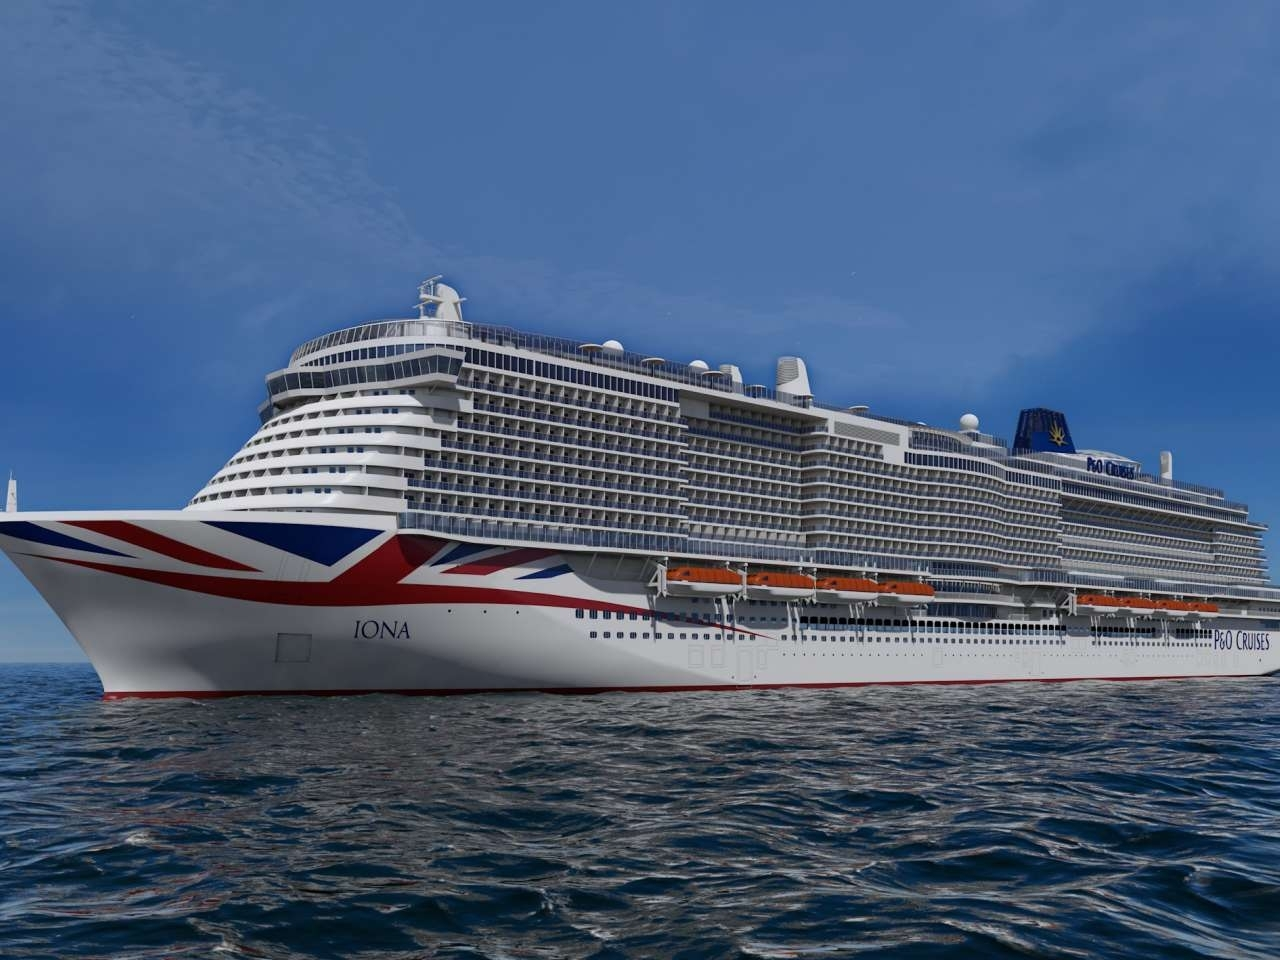 Iona Cruise Ship & Cruise Deals | P&o Cruises